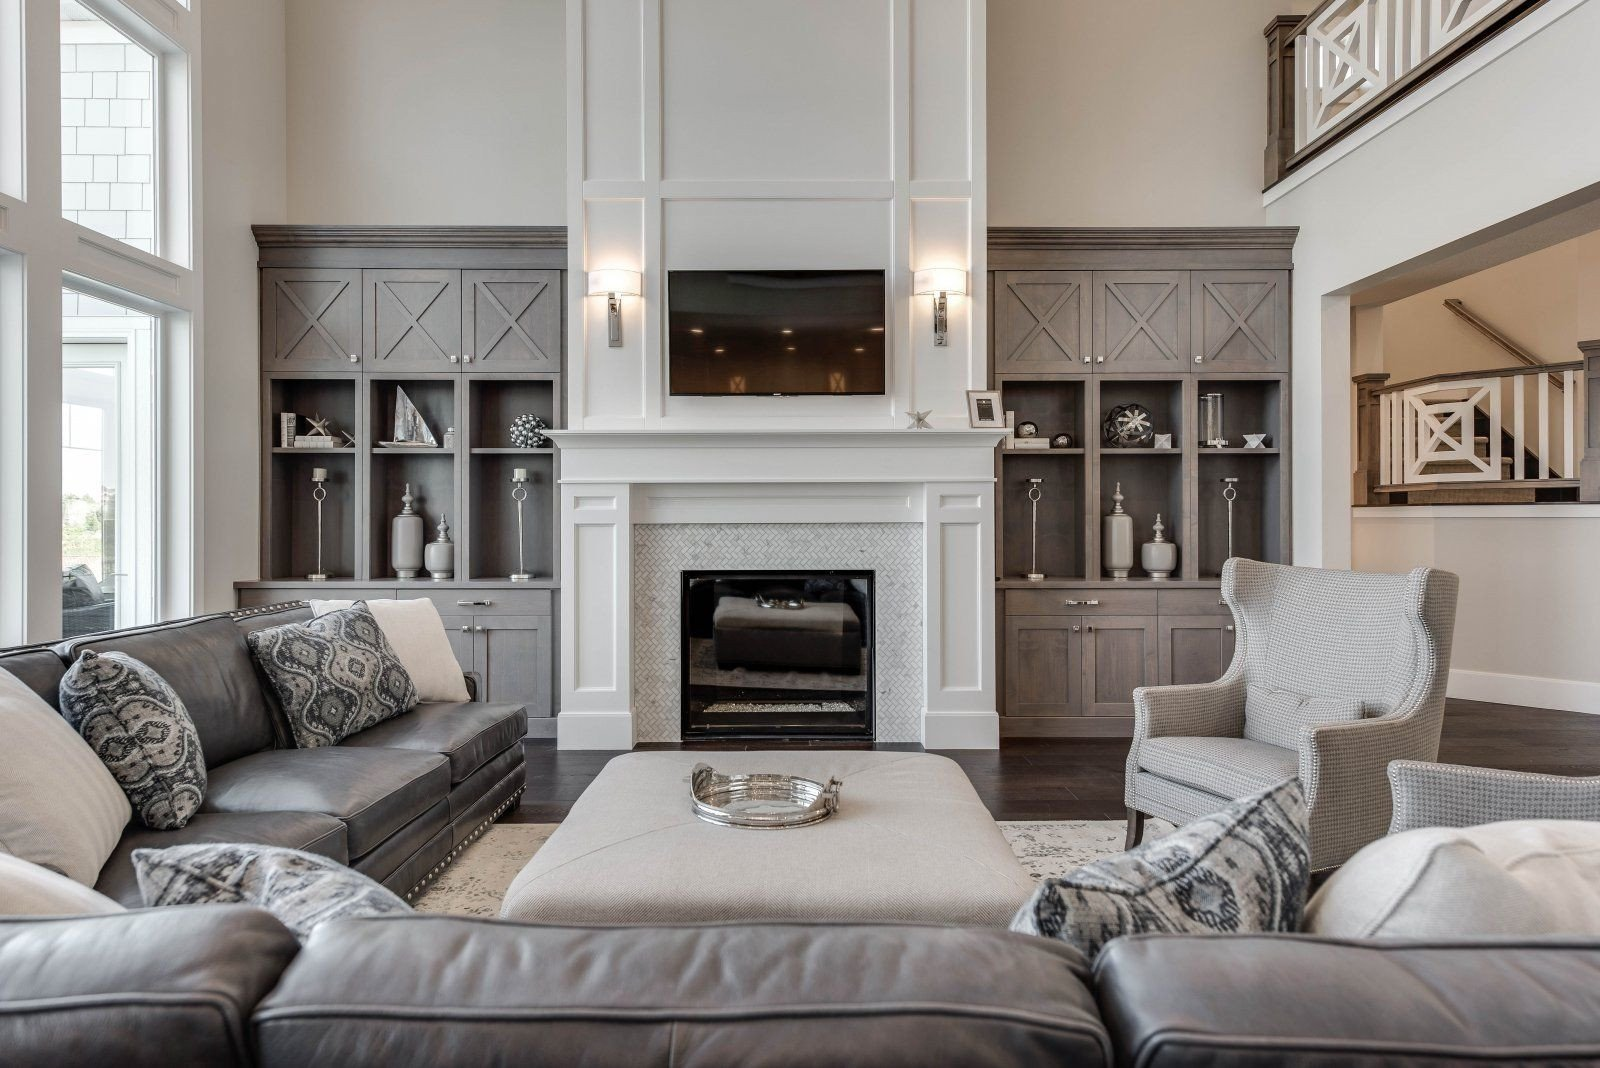 Living Room Decor with Fireplace Inspirational Salt Lake Parade Of Homes